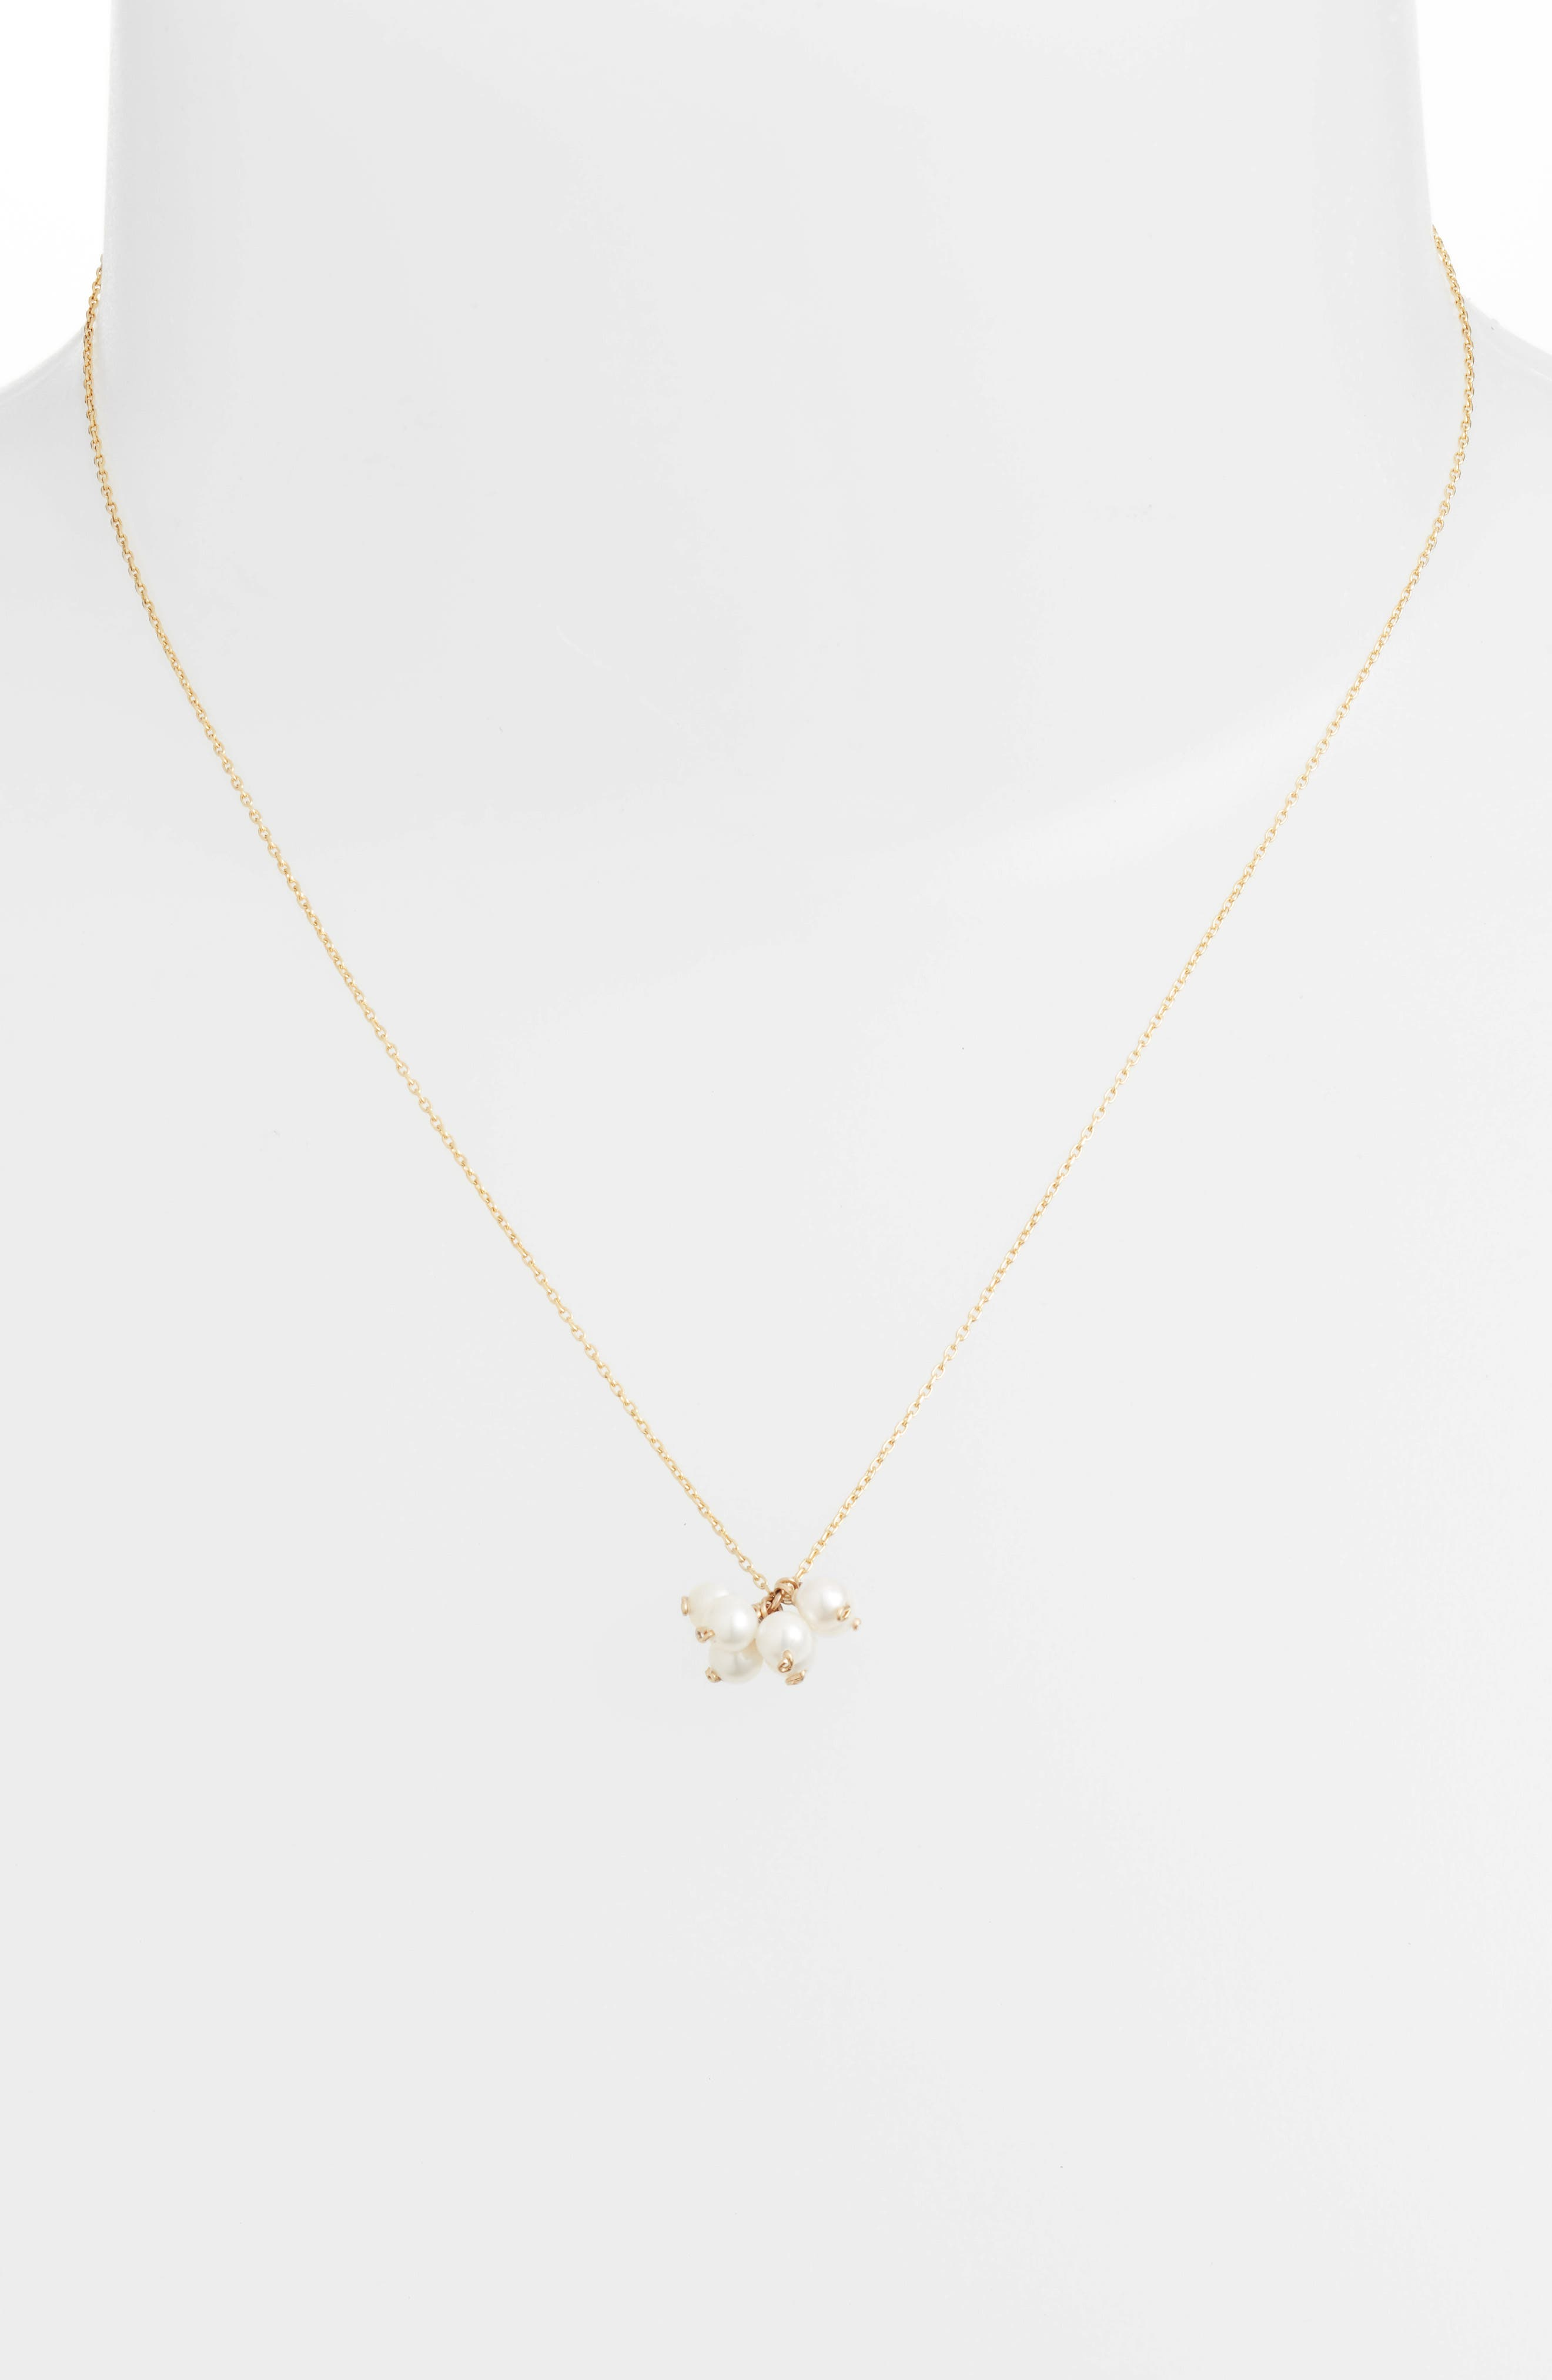 Baby Pearl Cluster Pendant Necklace,                             Alternate thumbnail 2, color,                             Yellow Gold/ White Pearl